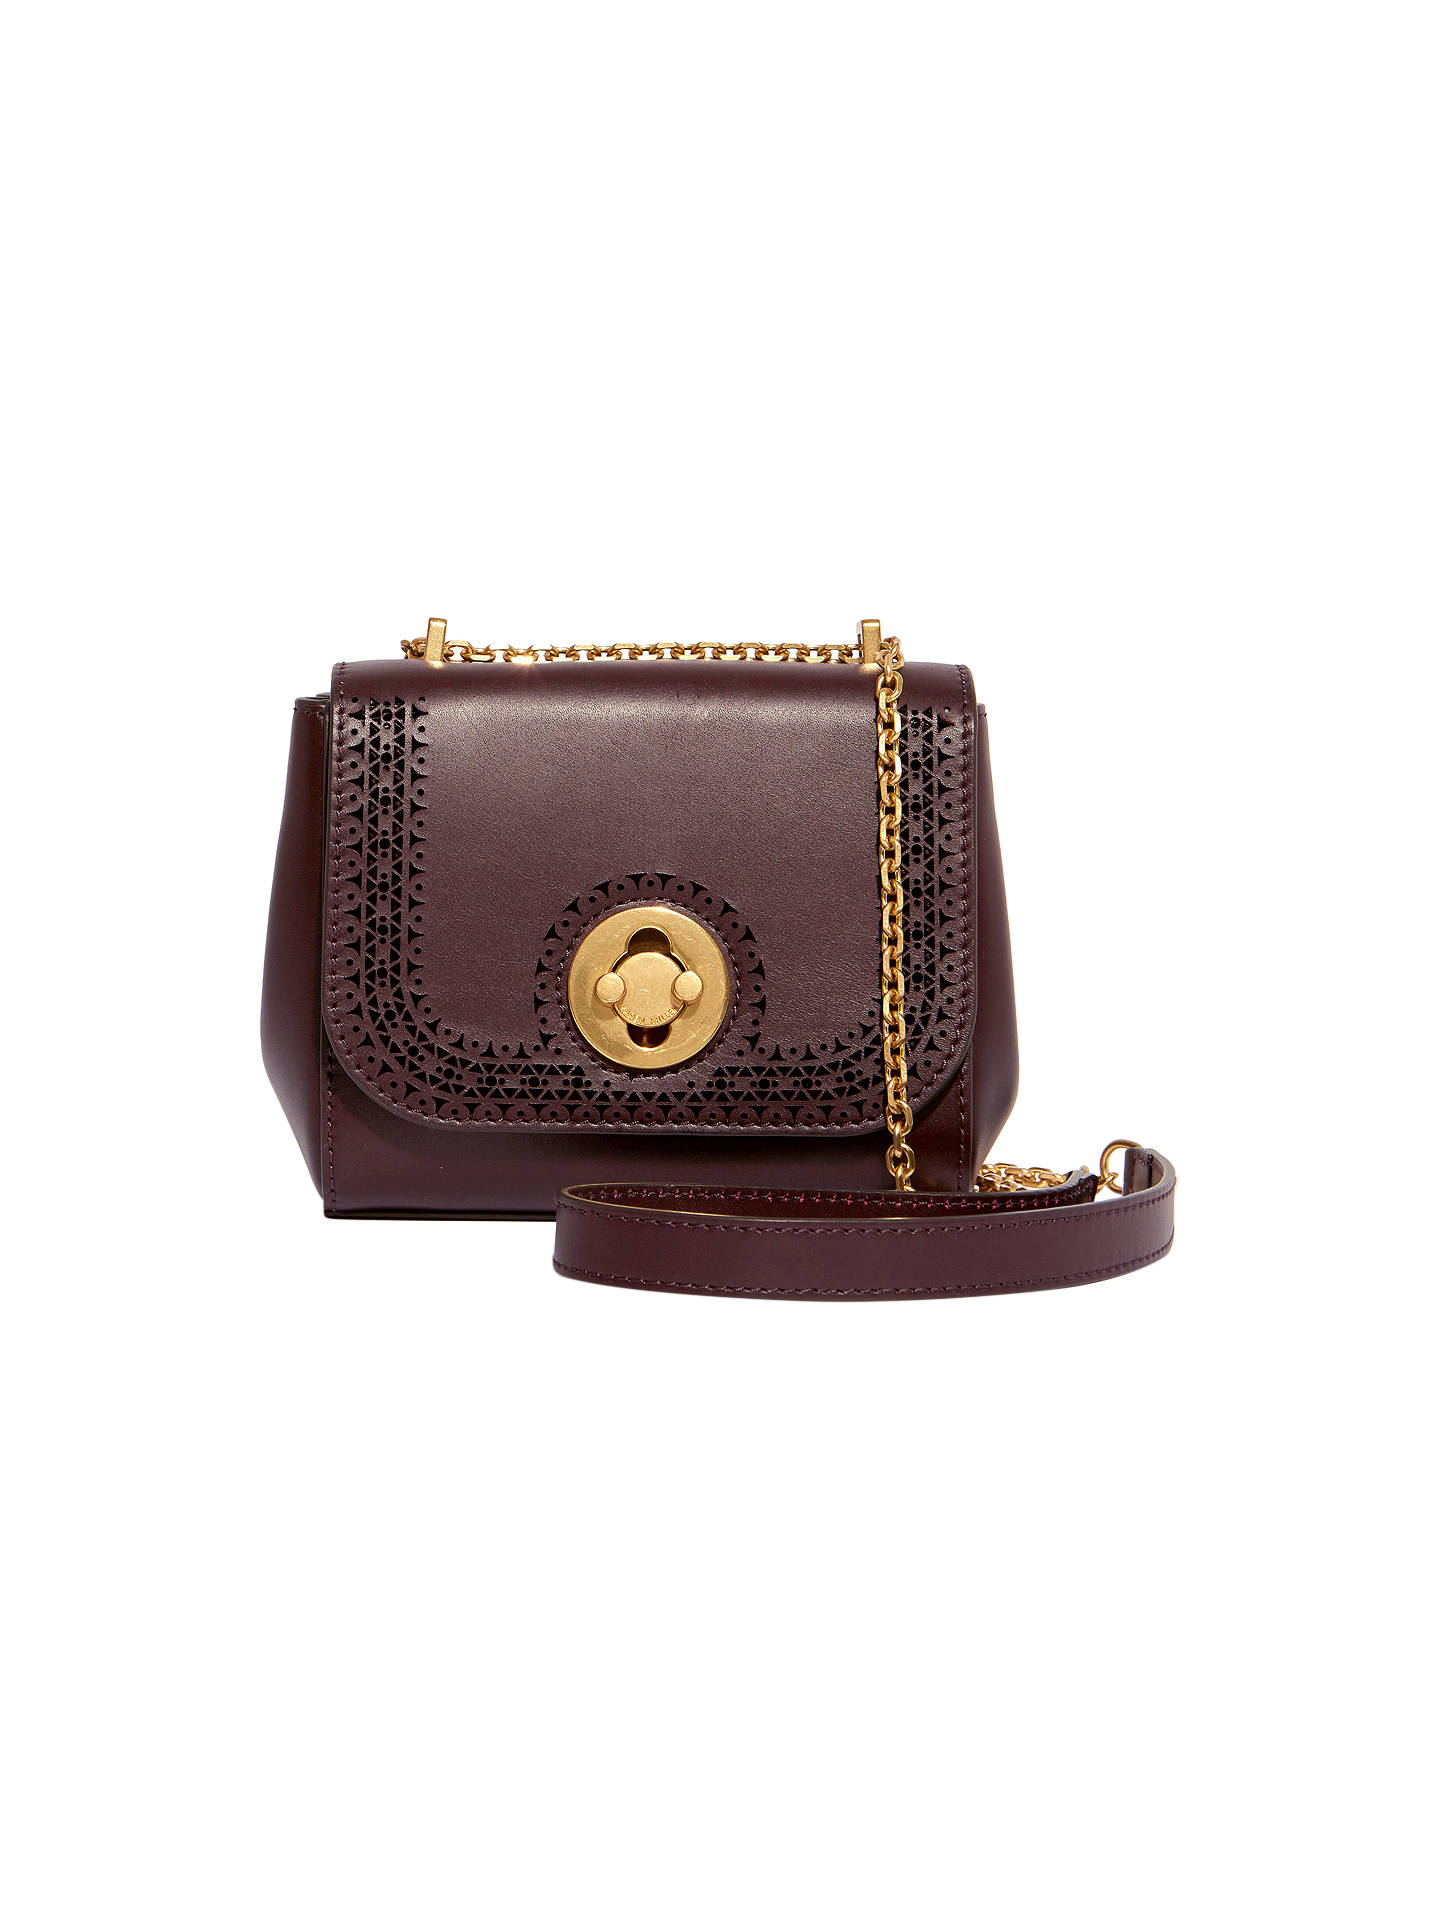 Karen Millen Antique Leather Cross Body Bag Aubergine Online At Johnlewis